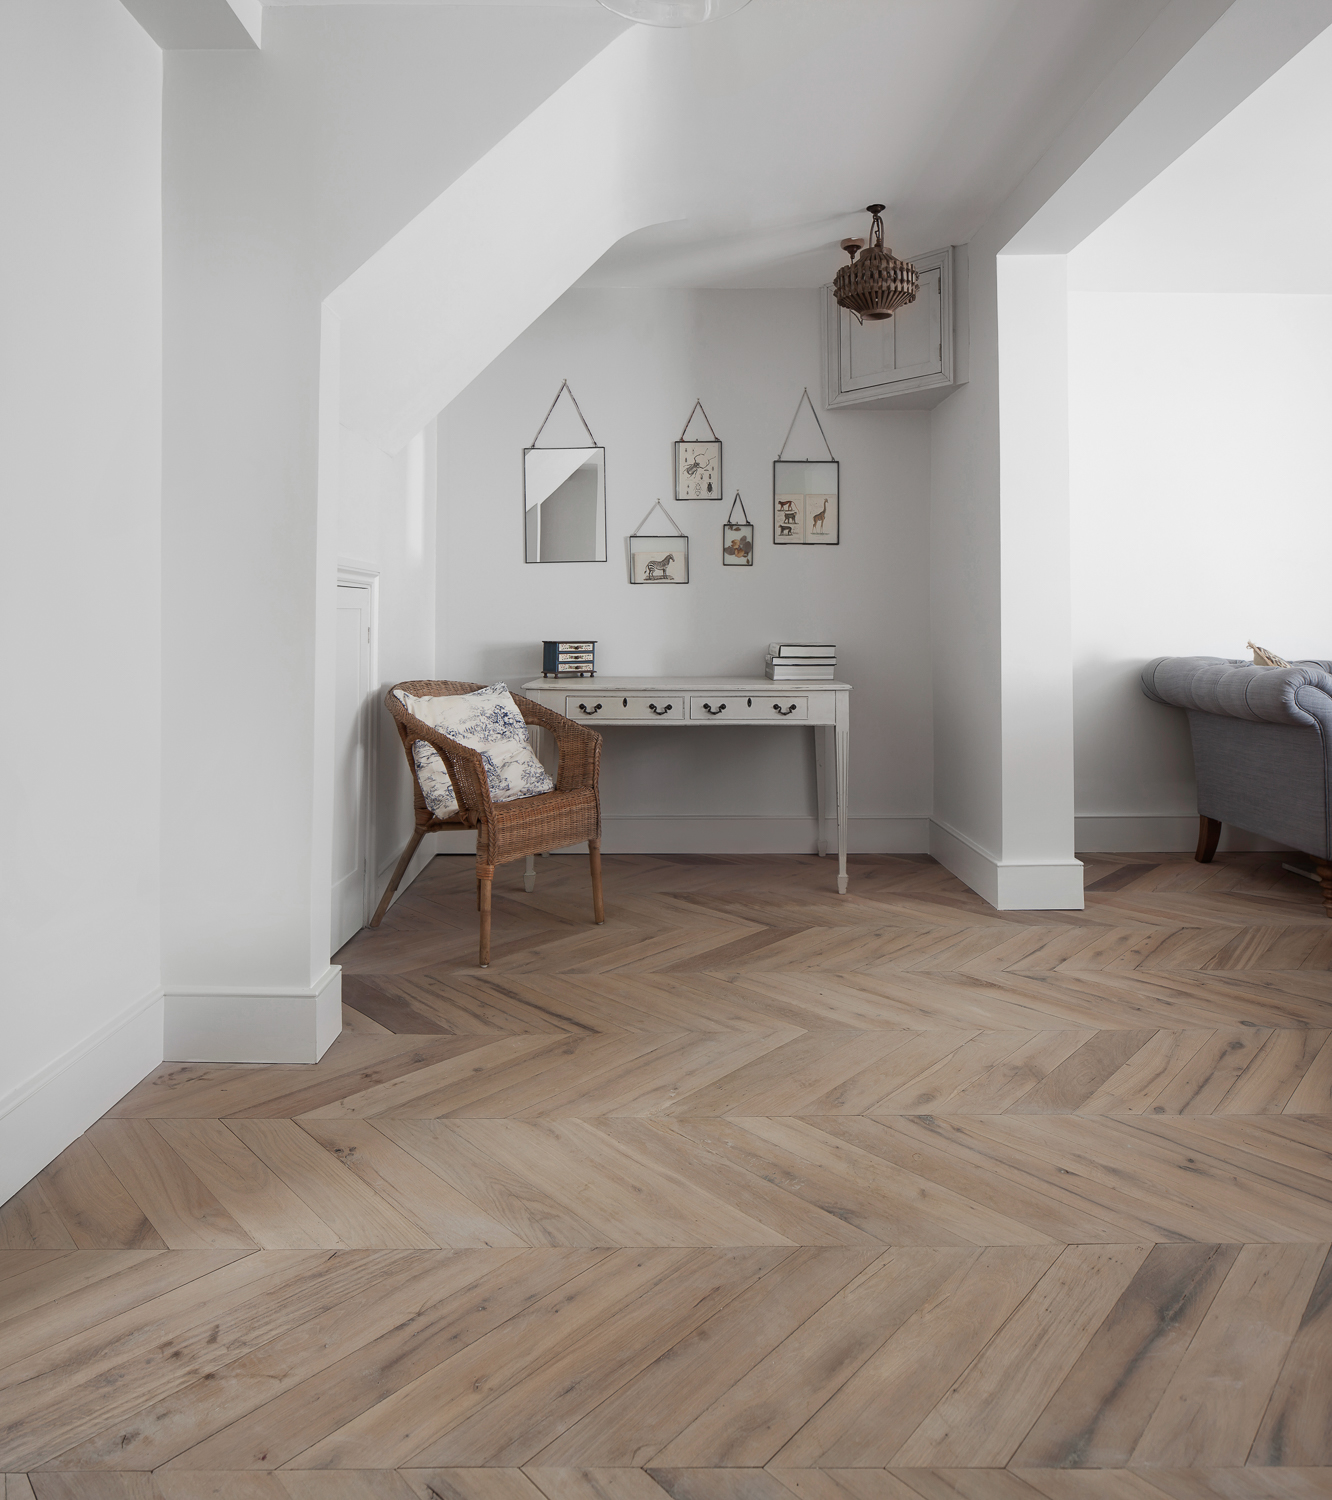 2017 Wood Flooring Trends By The Flooring Experts The